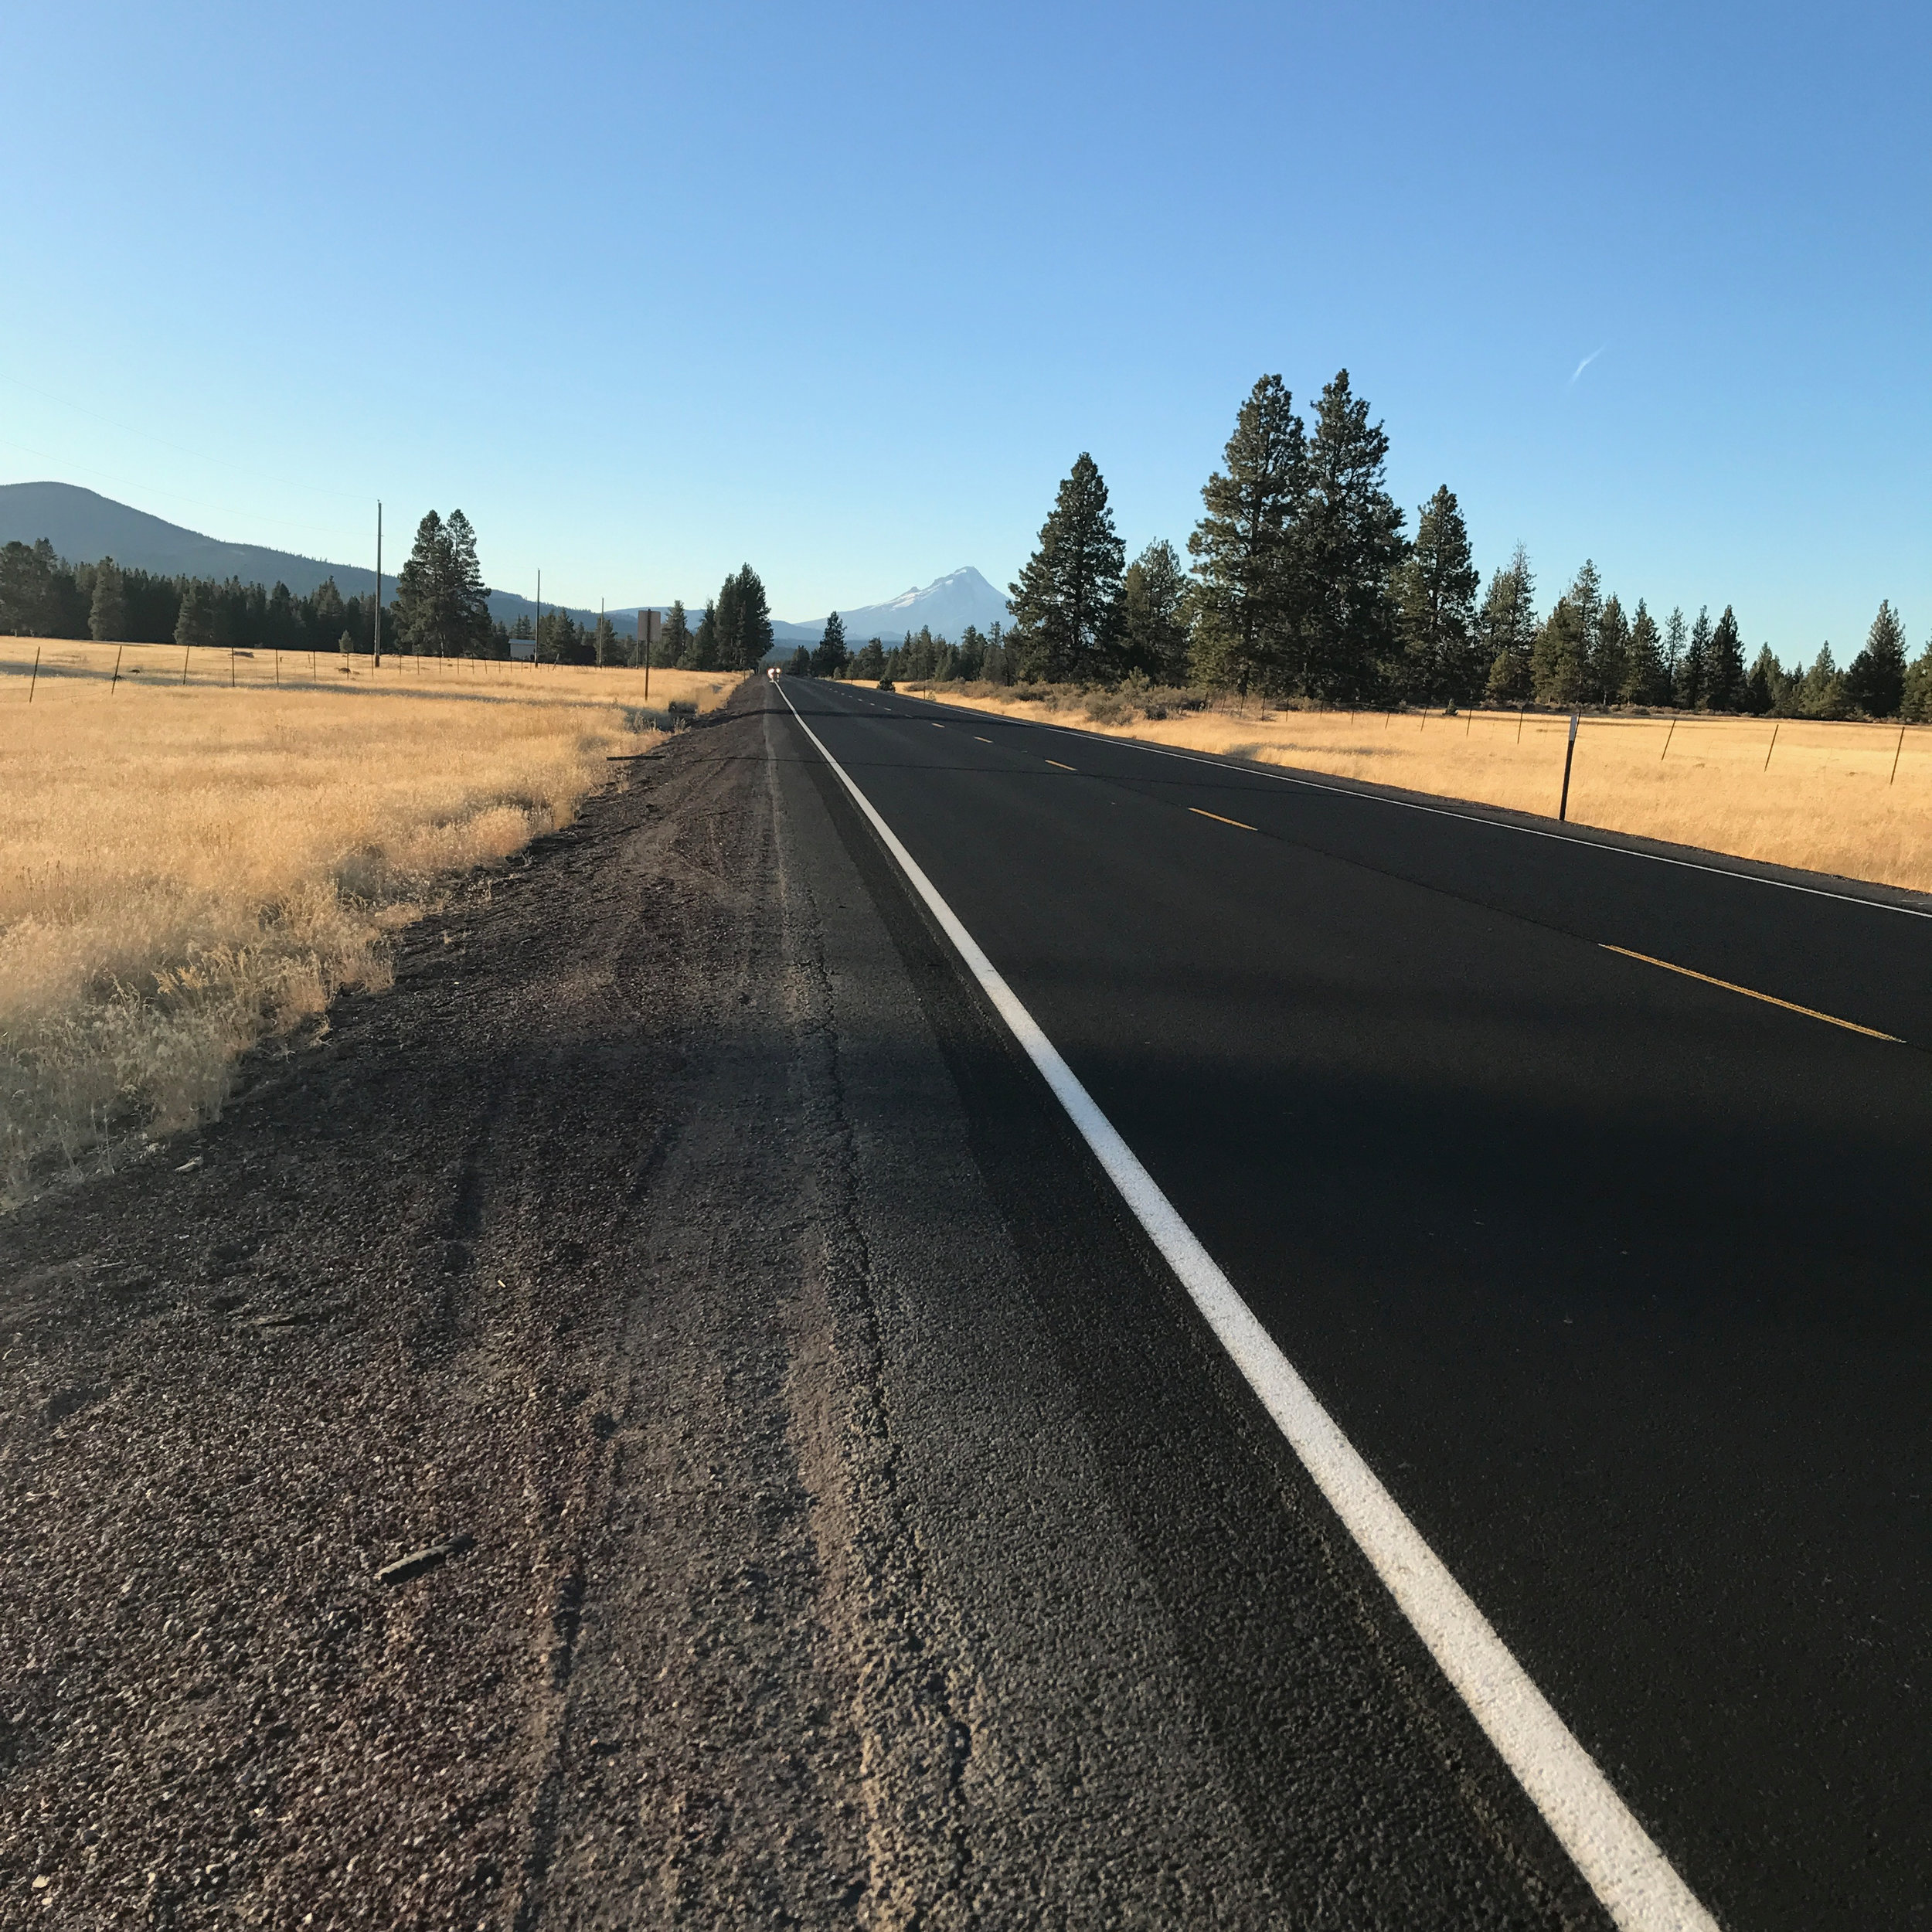 Warm Springs Highway, getting ever so much closer to Mt. Hood